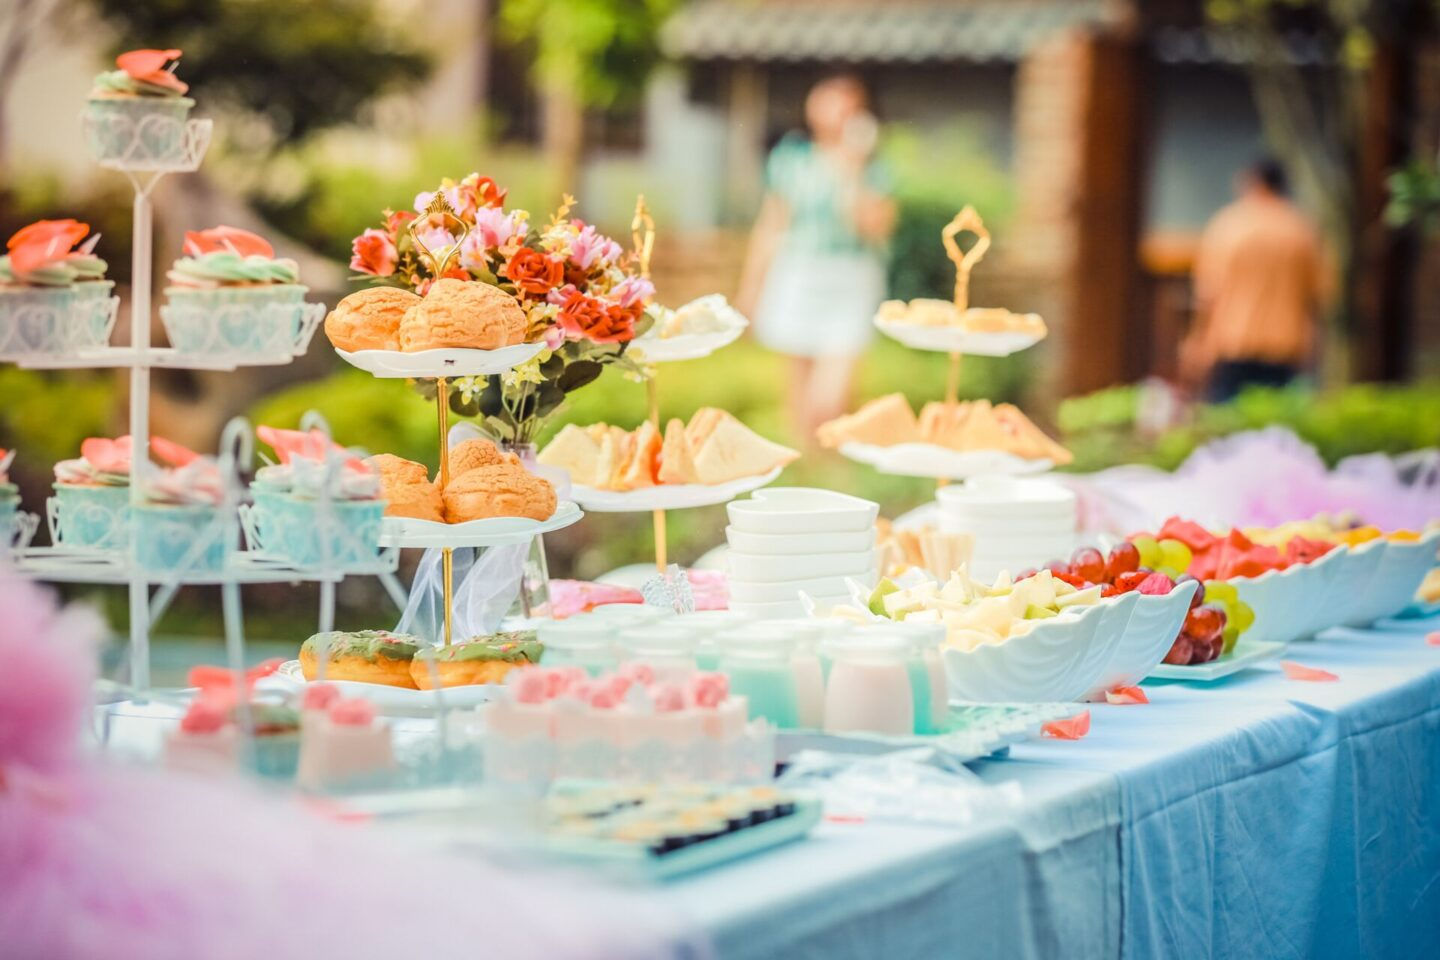 Tips For Planning A Garden Party | Lifestyle